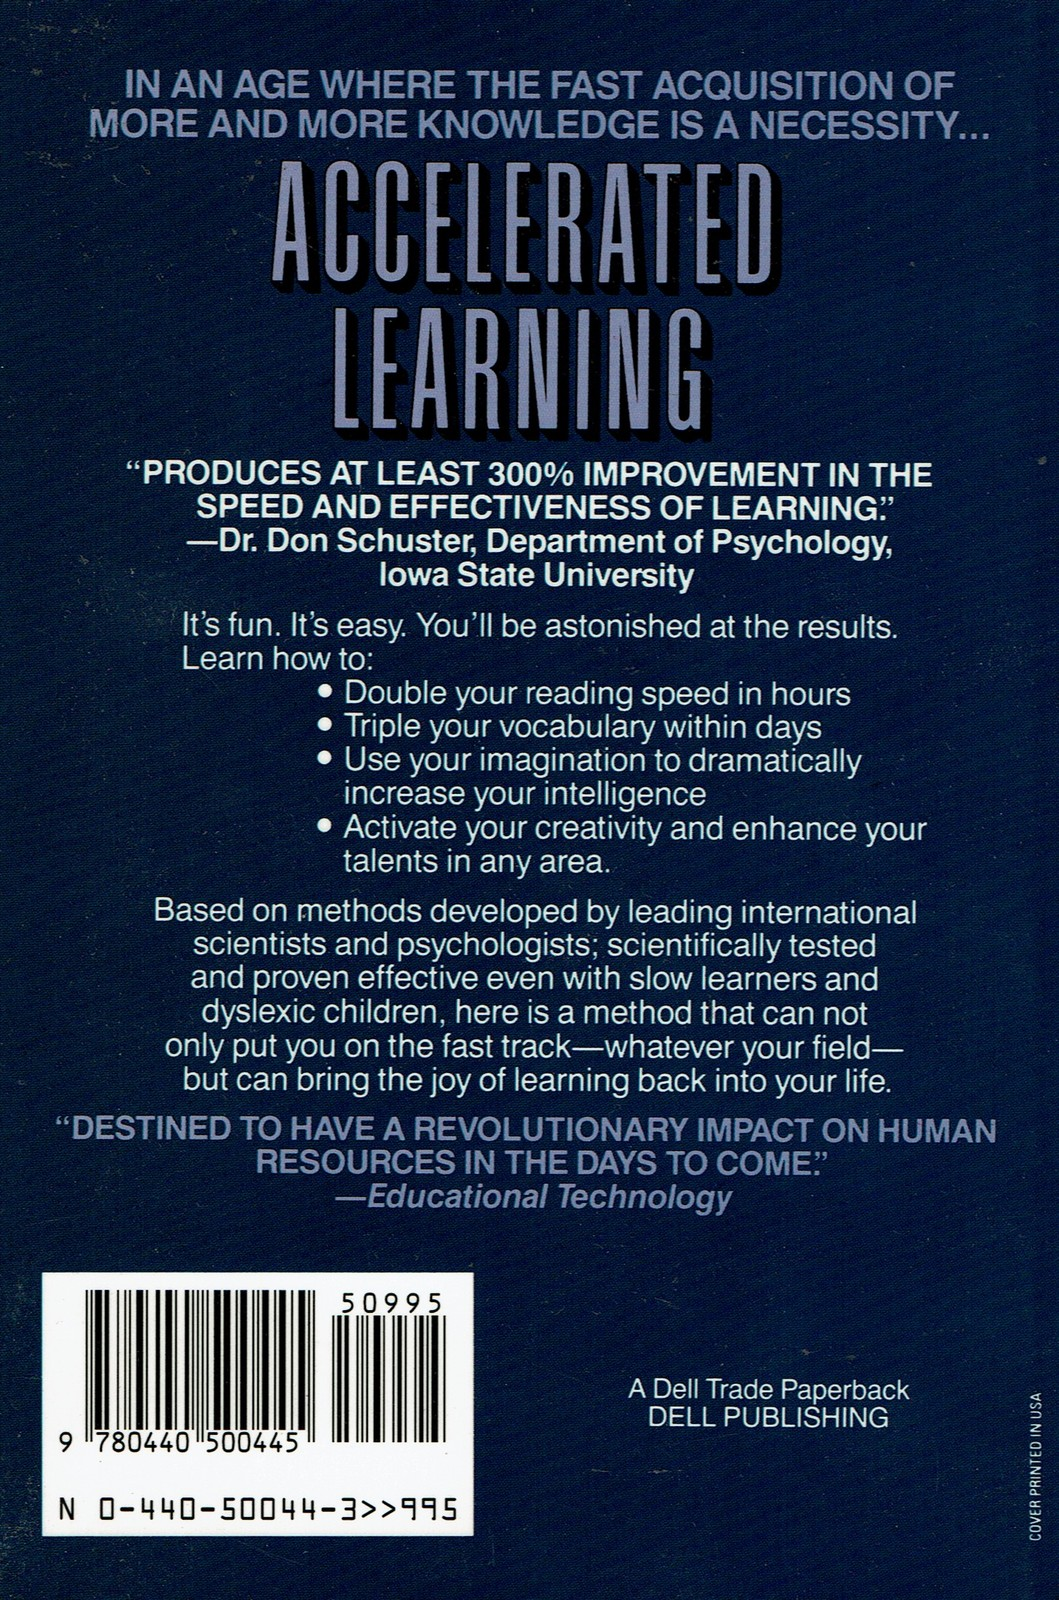 Accelerated Learning, by Colin Rose